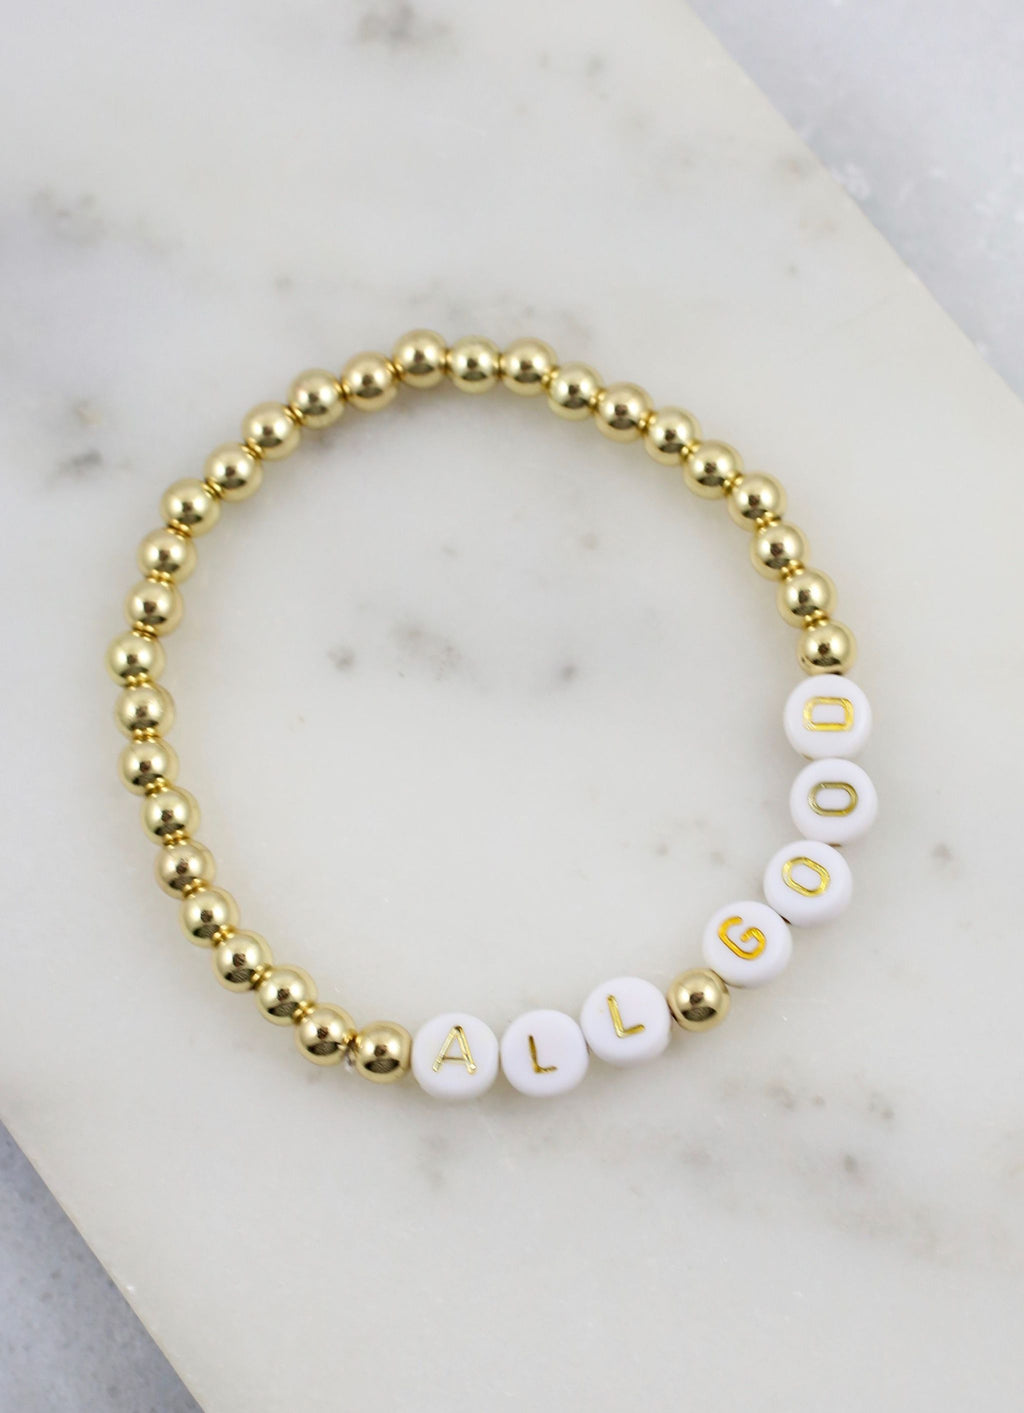 All Good Bead Word Bracelet Gold - Caroline Hill